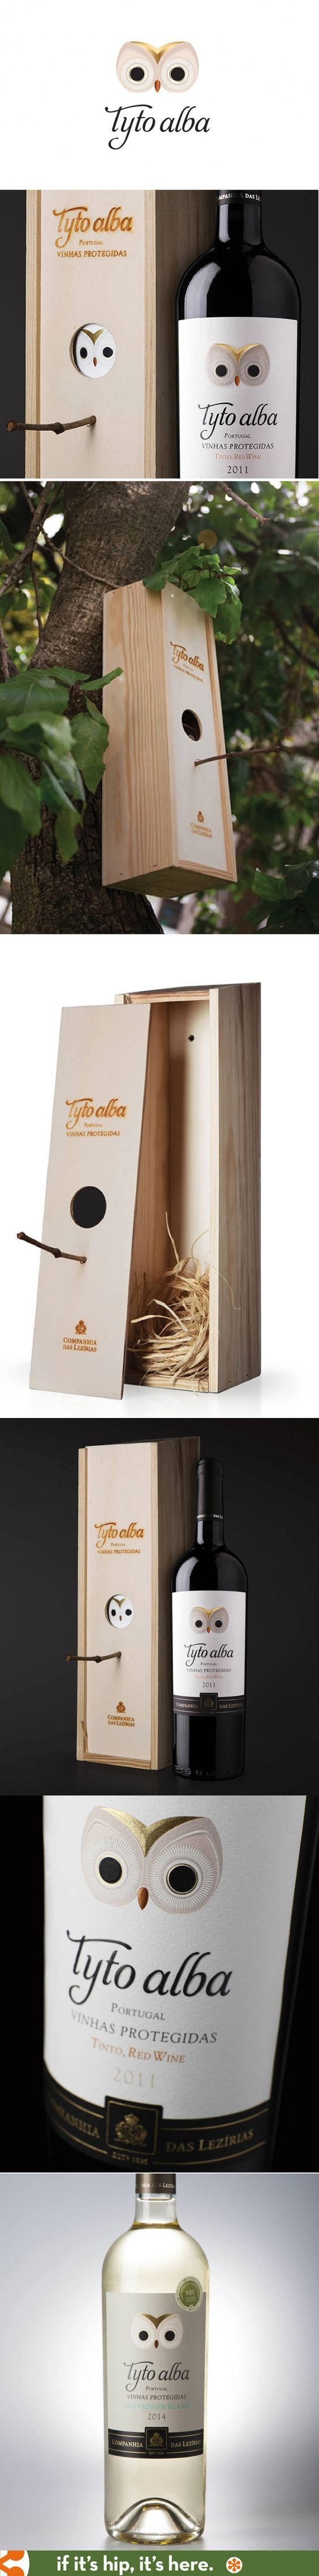 Tyto Alba Wine has some of the cutest packaging I've ever seen. Playing off the owl logo, Rita Rivotti wine branding and design has turned the wooden case into a birdhouse.: